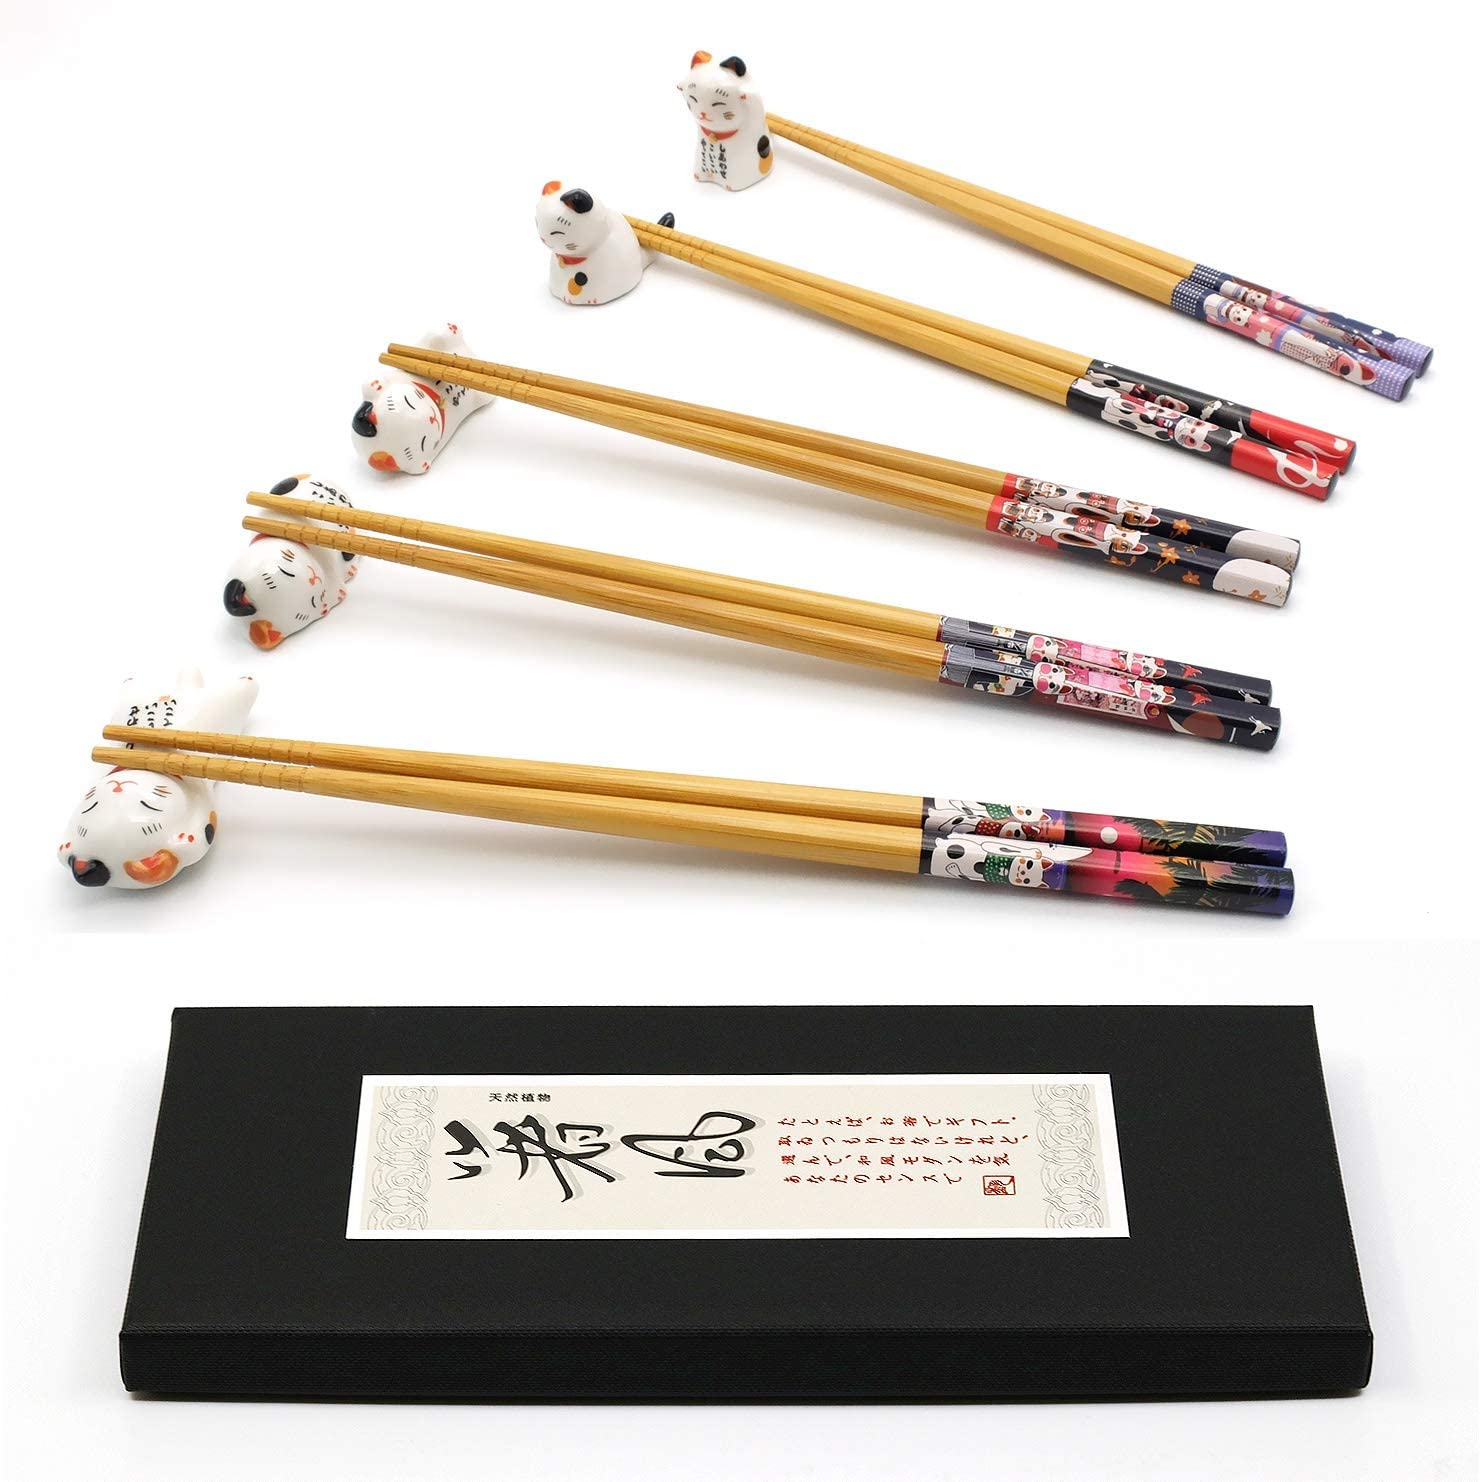 5 Pairs Chopsticks and Chopstick Rest Set, Cute Lucky Cat Chopsticks Holder 5 Cats, Classic Japanese Style Bamboo Natural Reusable Chopsticks, Dishwasher - Safe, Chopsticks Holder Gift Set (Lucky Cat)